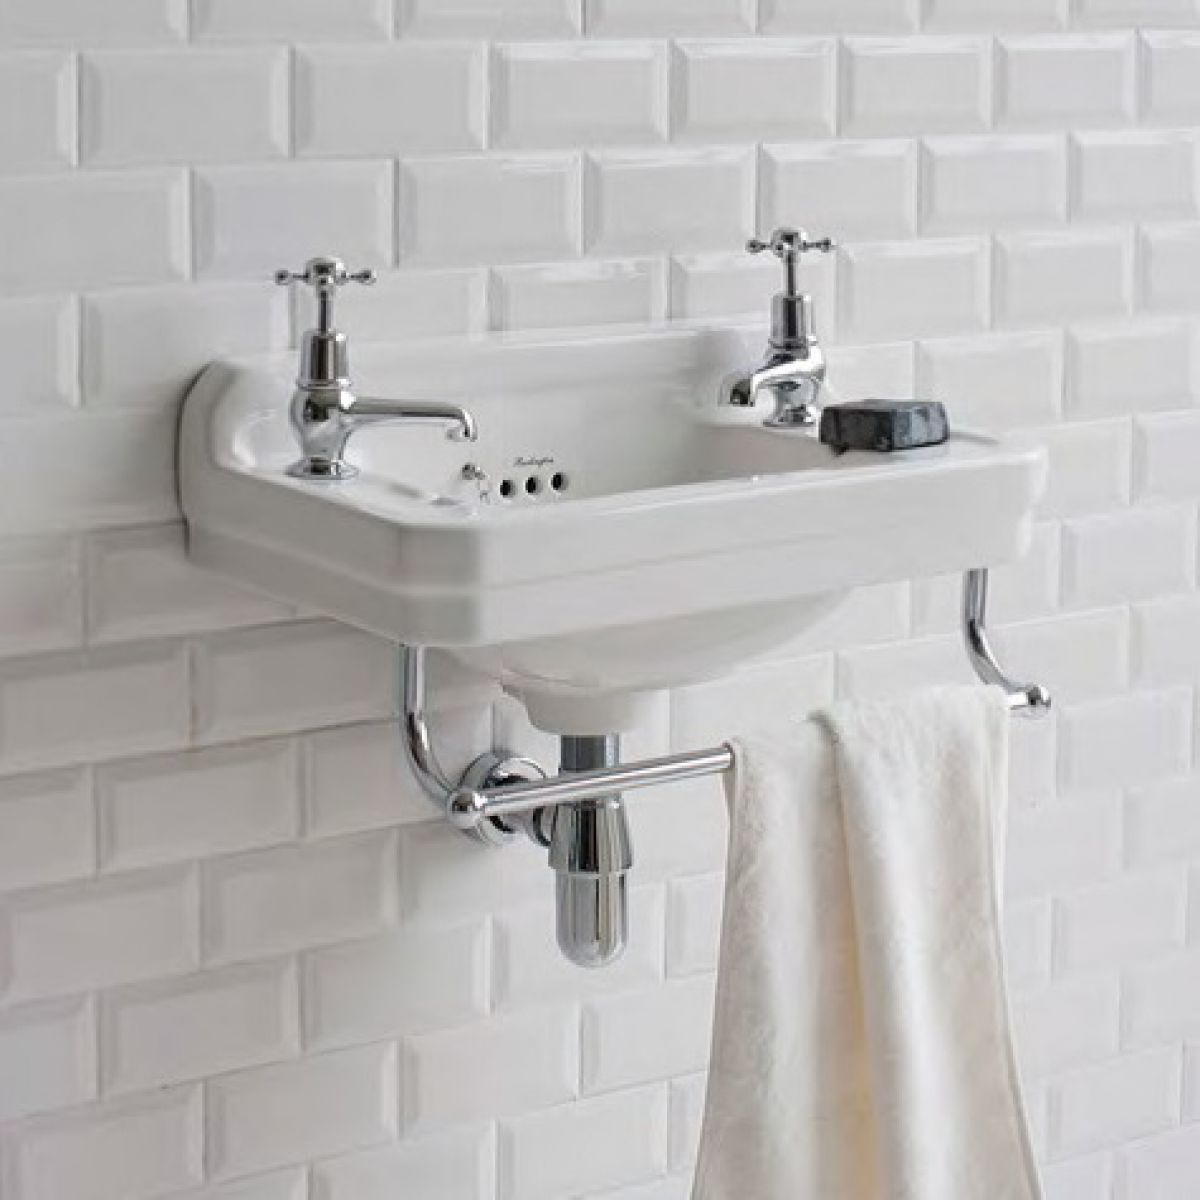 Burlington edwardian cloakroom basin uk bathrooms for Bathroom ideas edwardian